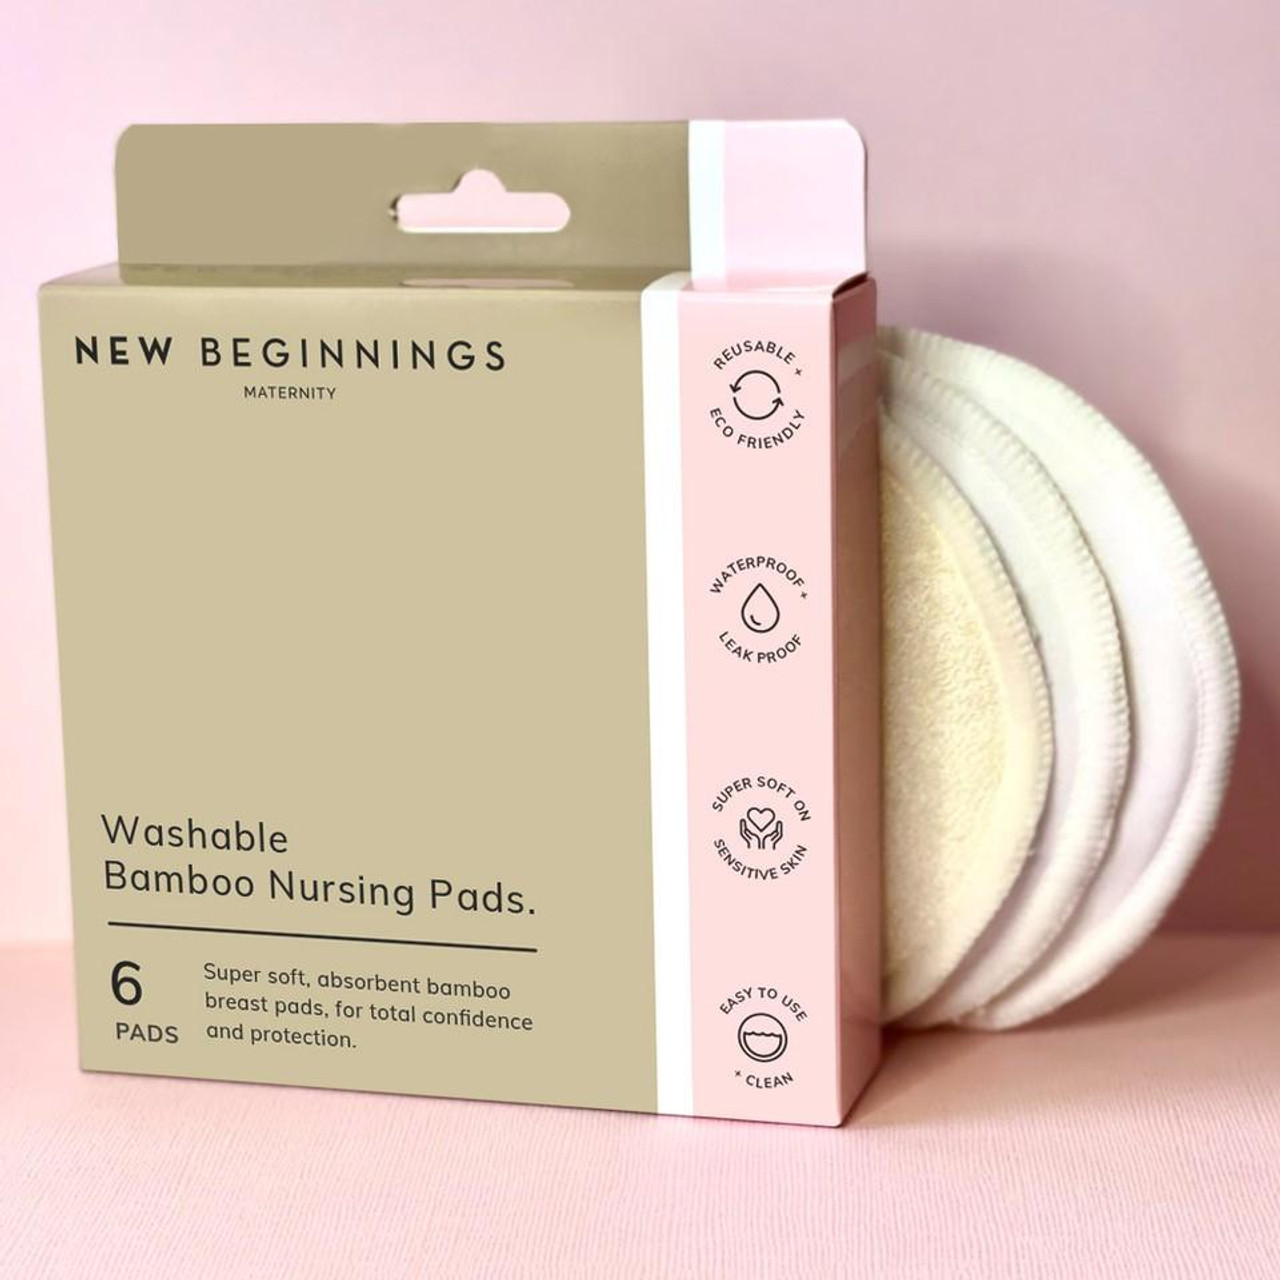 New Beginnings Washable Bamboo Nursing Pad 6pcs at Baby Barn Discounts New Beginnings bamboo nursing pads is an eco-friendly option for feeling confident and dry all day.